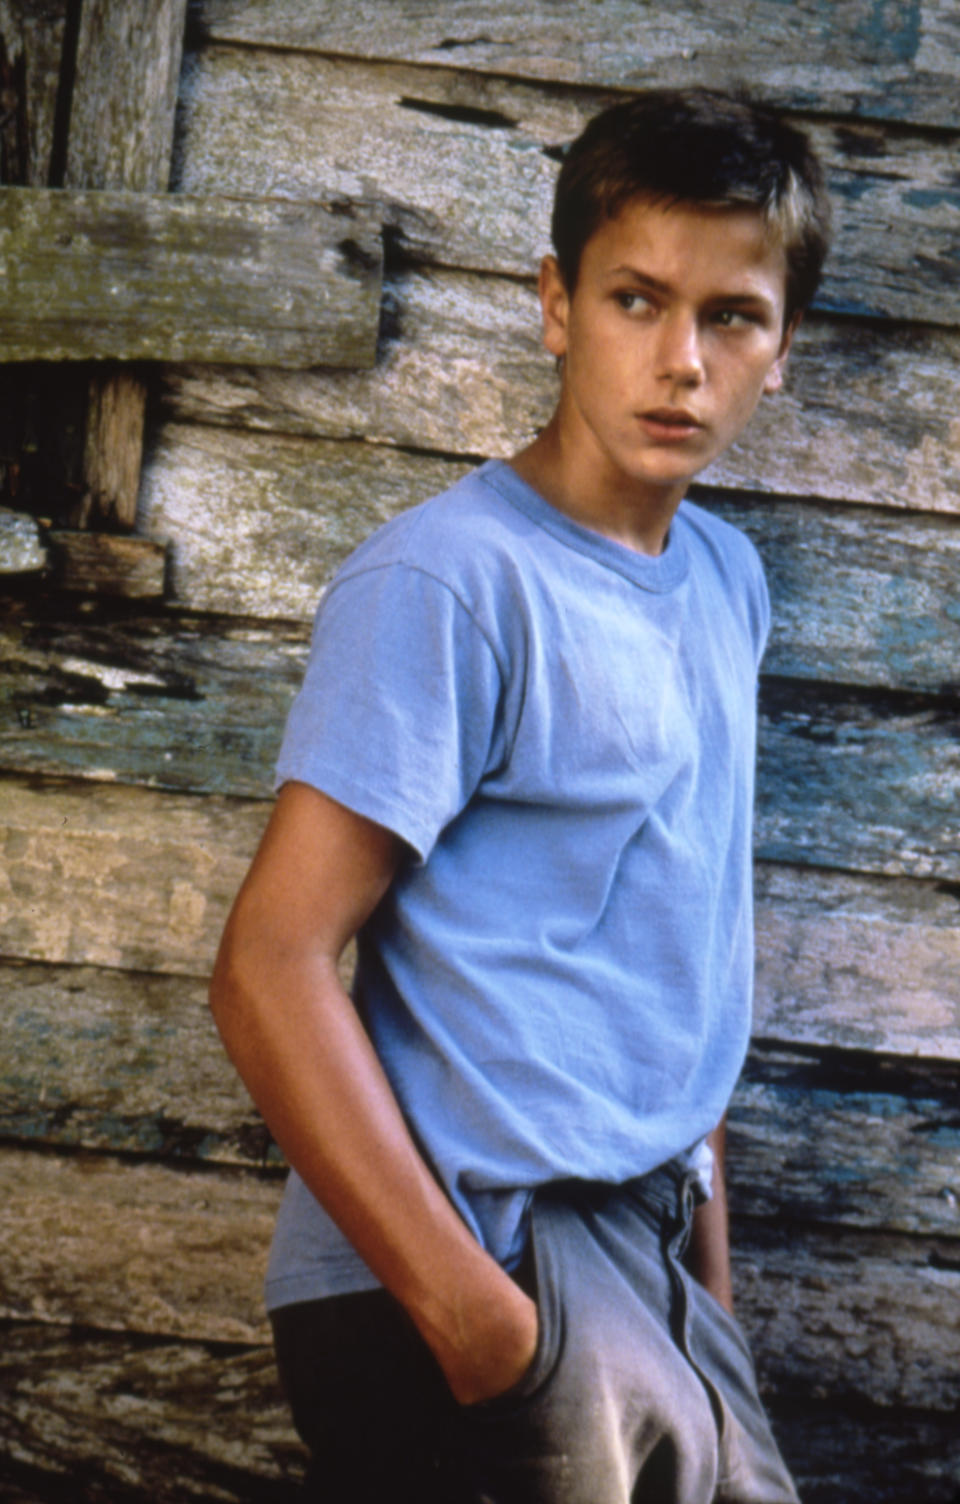 American actor River Phoenix on the set of The Mosquito Coast based on the novel by Paul Theroux and directed by Australian Peter Weir. (Photo by Sunset Boulevard/Corbis via Getty Images)